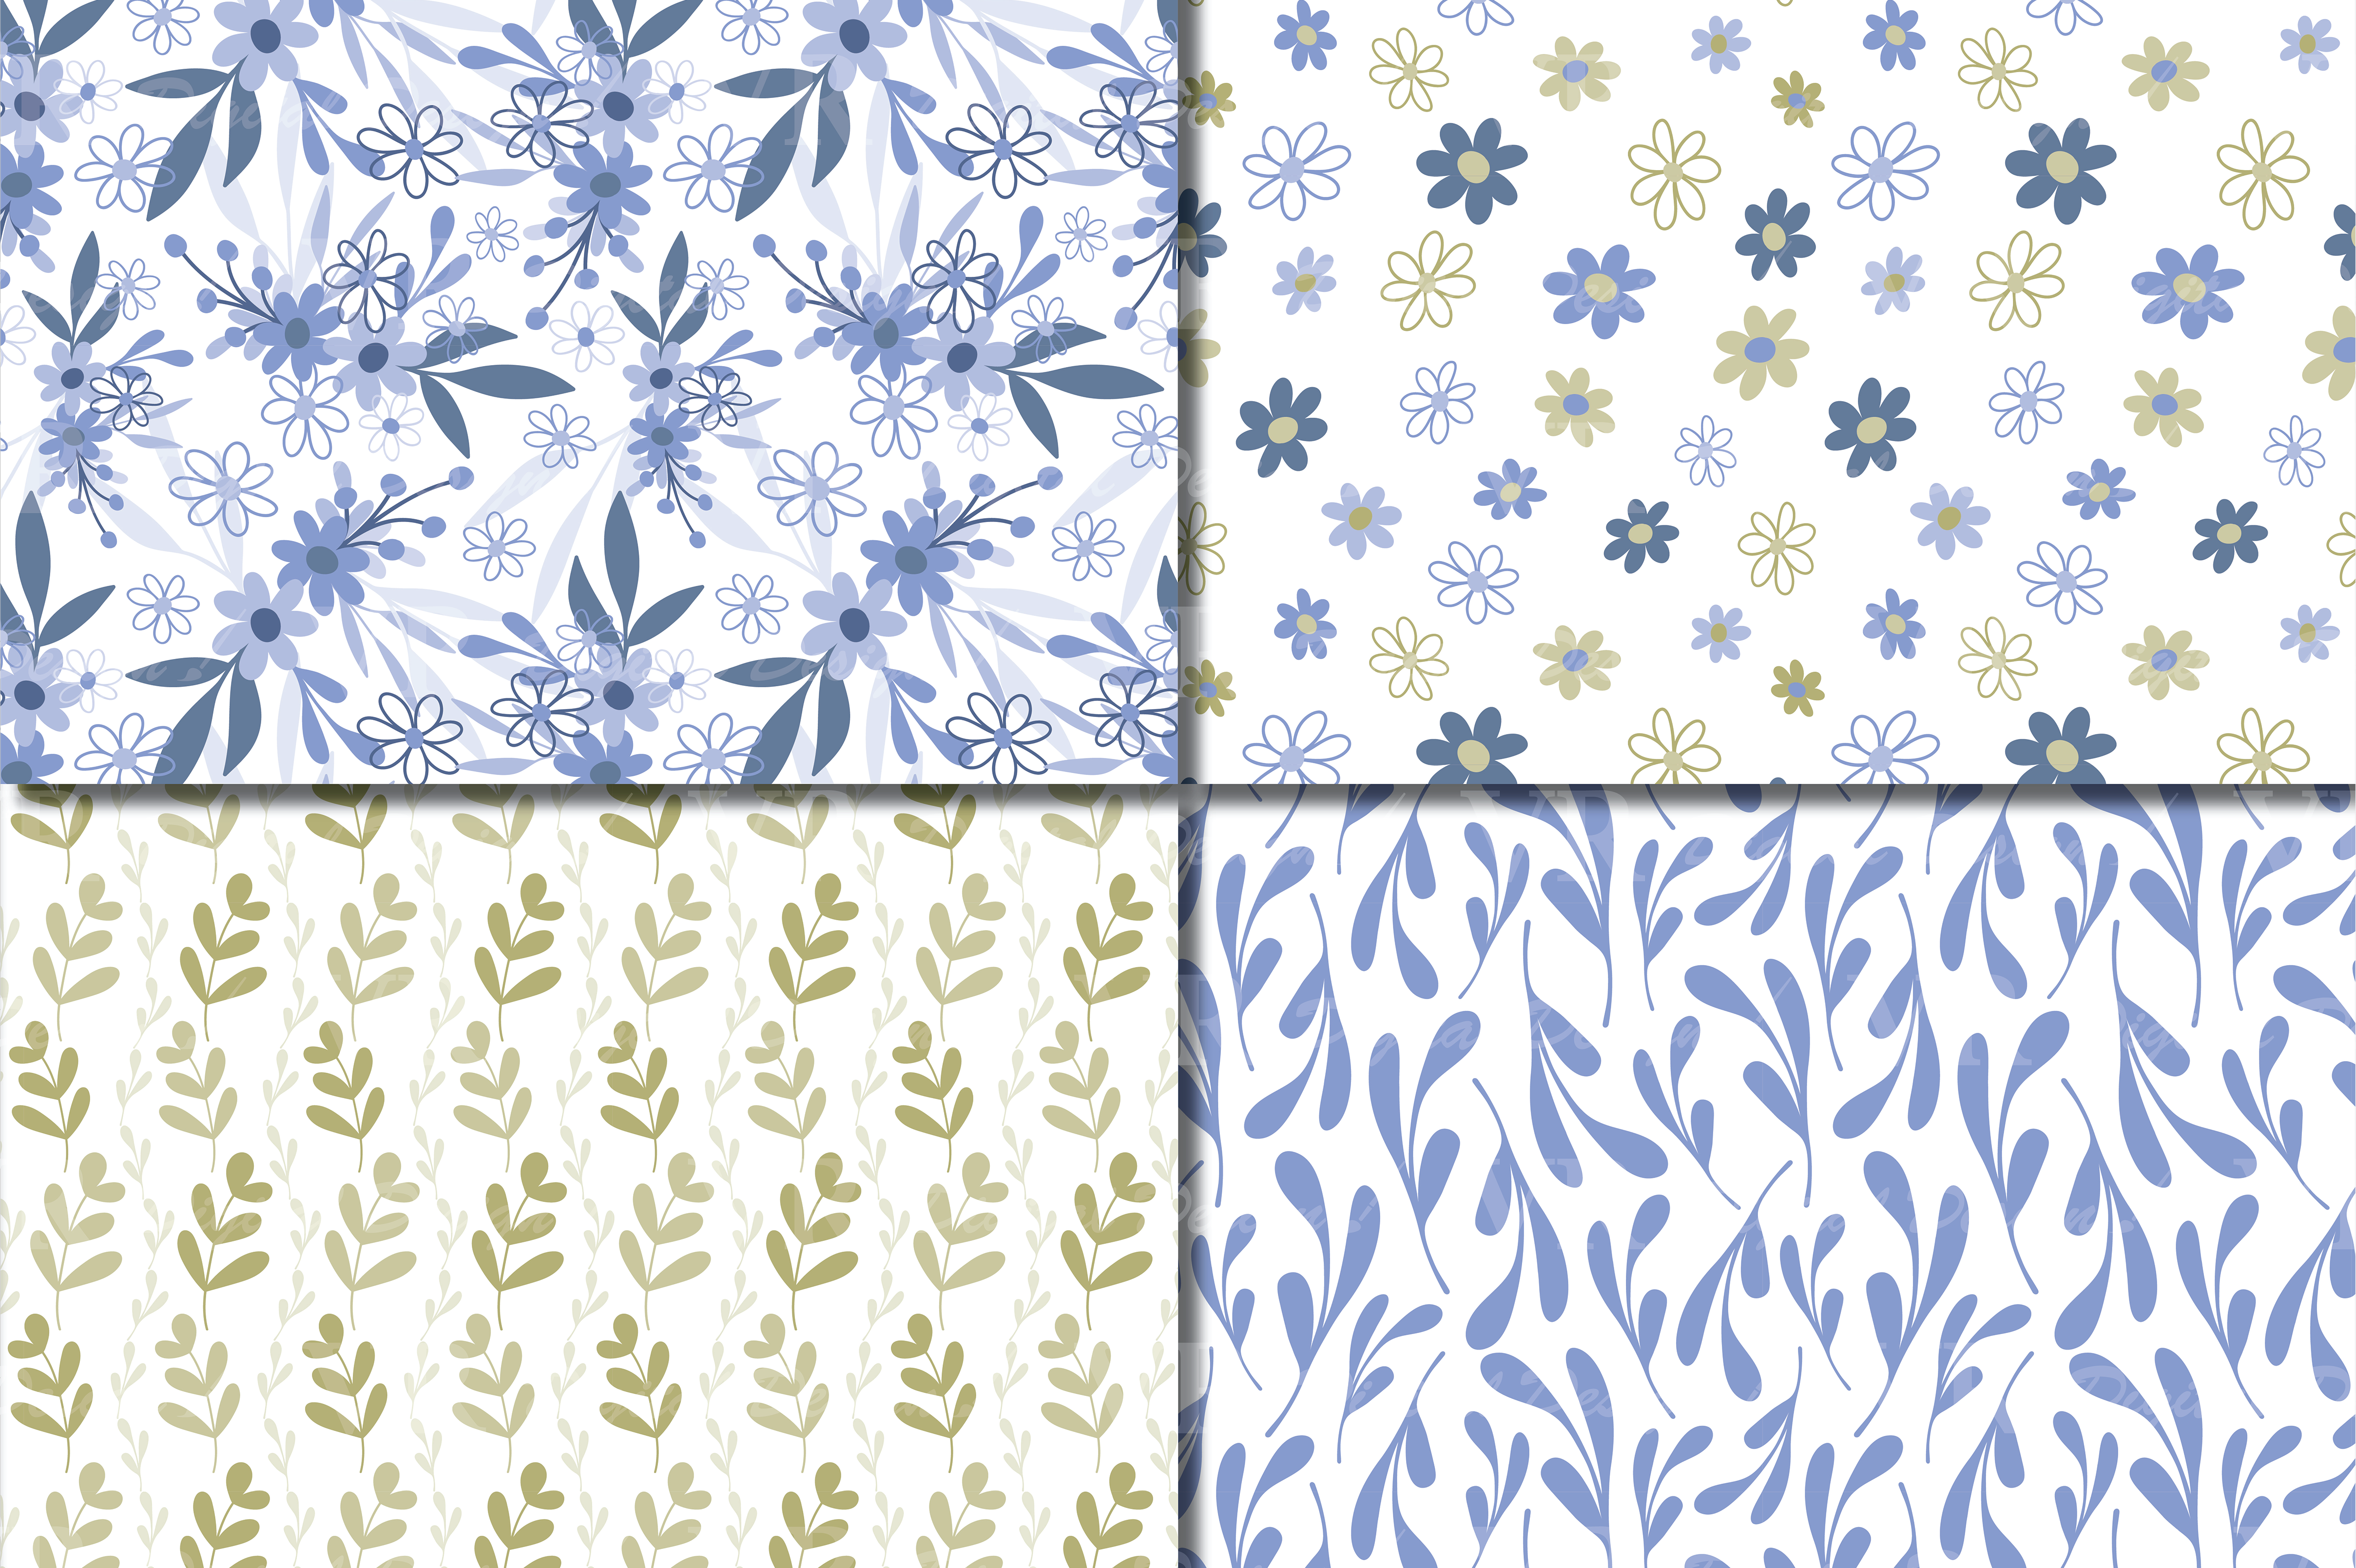 Seamless Blue and Green Hand Drawn Flowers and Leaves Digital Paper / Pastel Foliage Seamless Pattern Graphic Patterns By VR Digital Design - Image 3